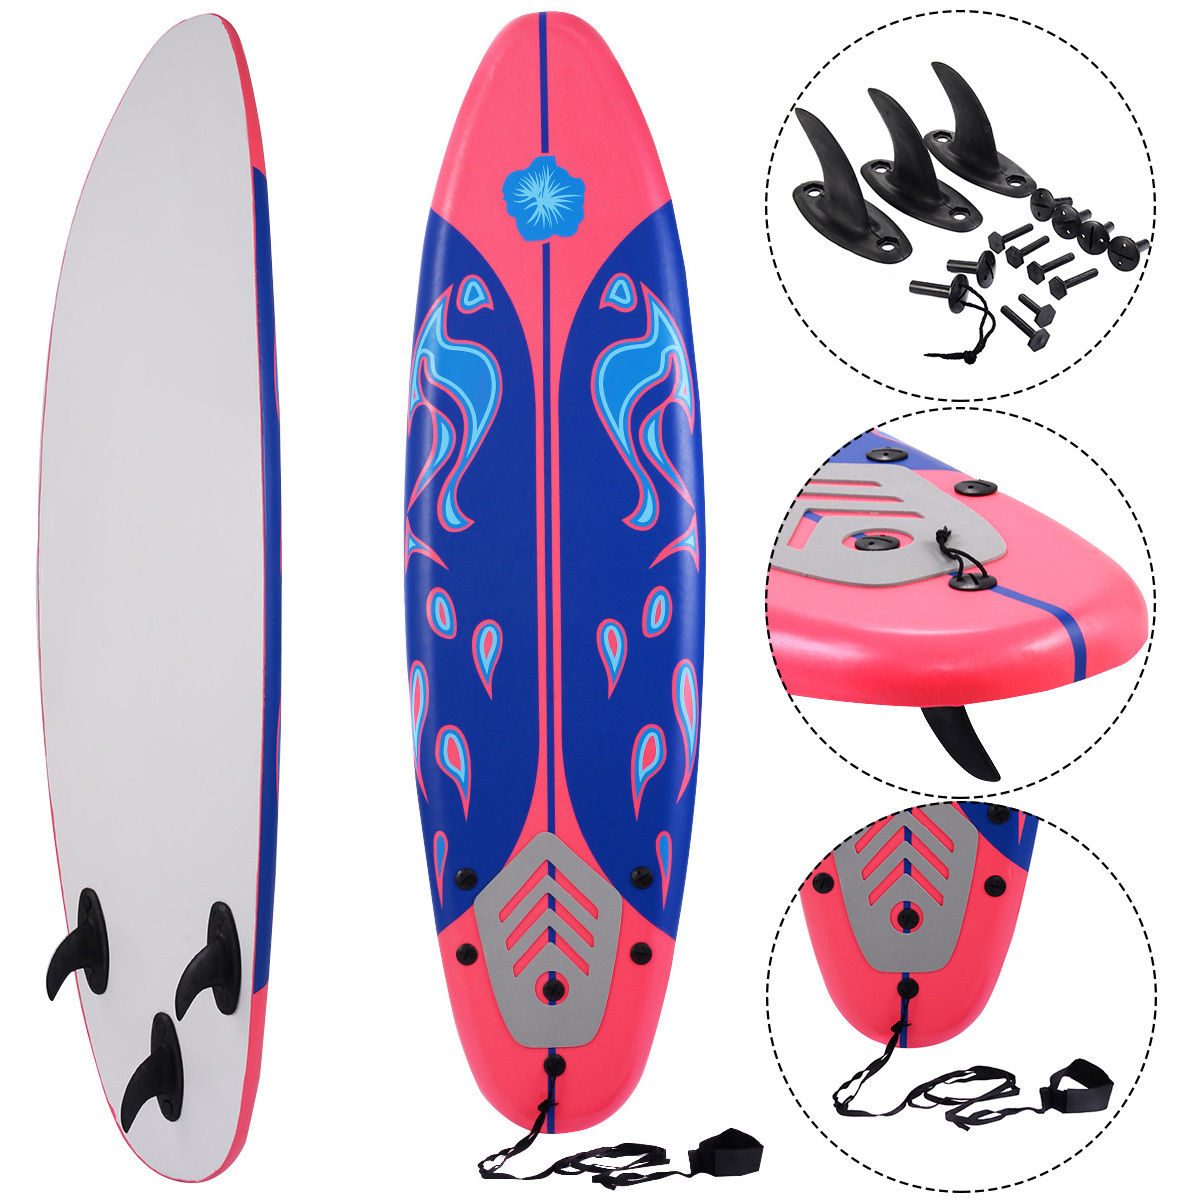 Costway 6' Surfboard Surf Foamie Boards Surfing Beach Ocean Body Boarding Red